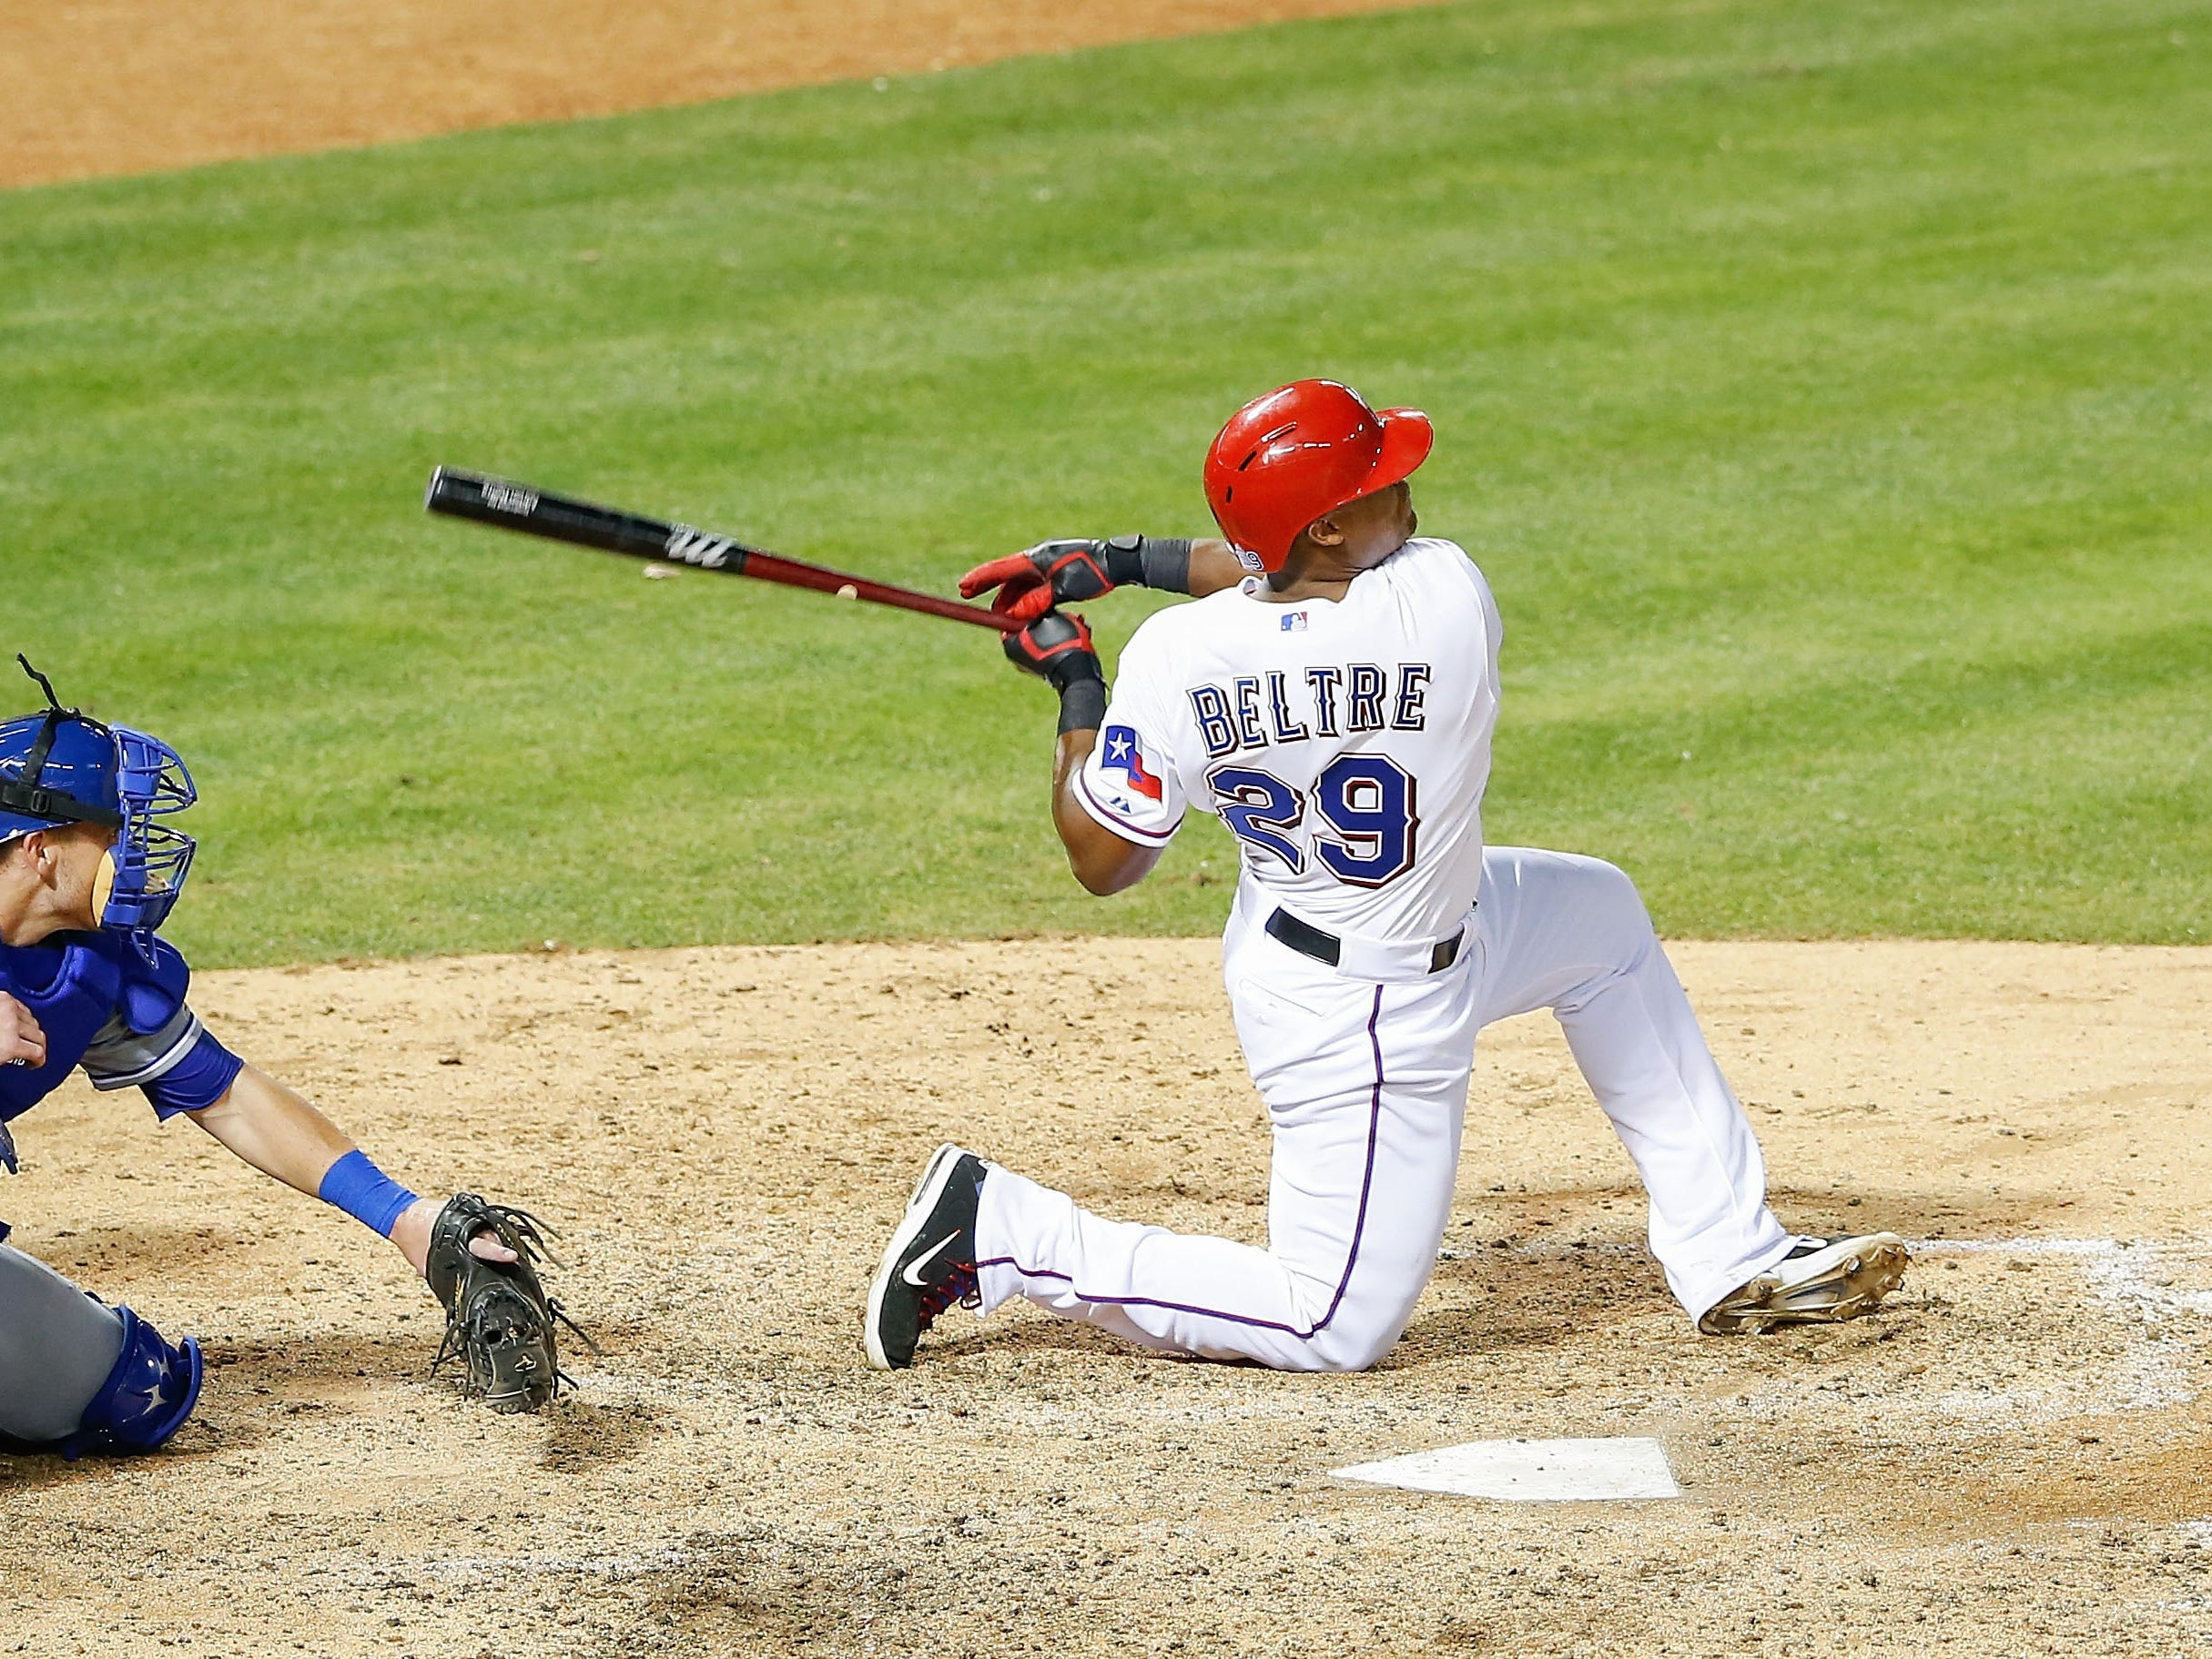 Beltre delivers one of his trademark home runs from a kneeling position. The right-handed hitter finished his career with 477 bombs and 1707 RBI.